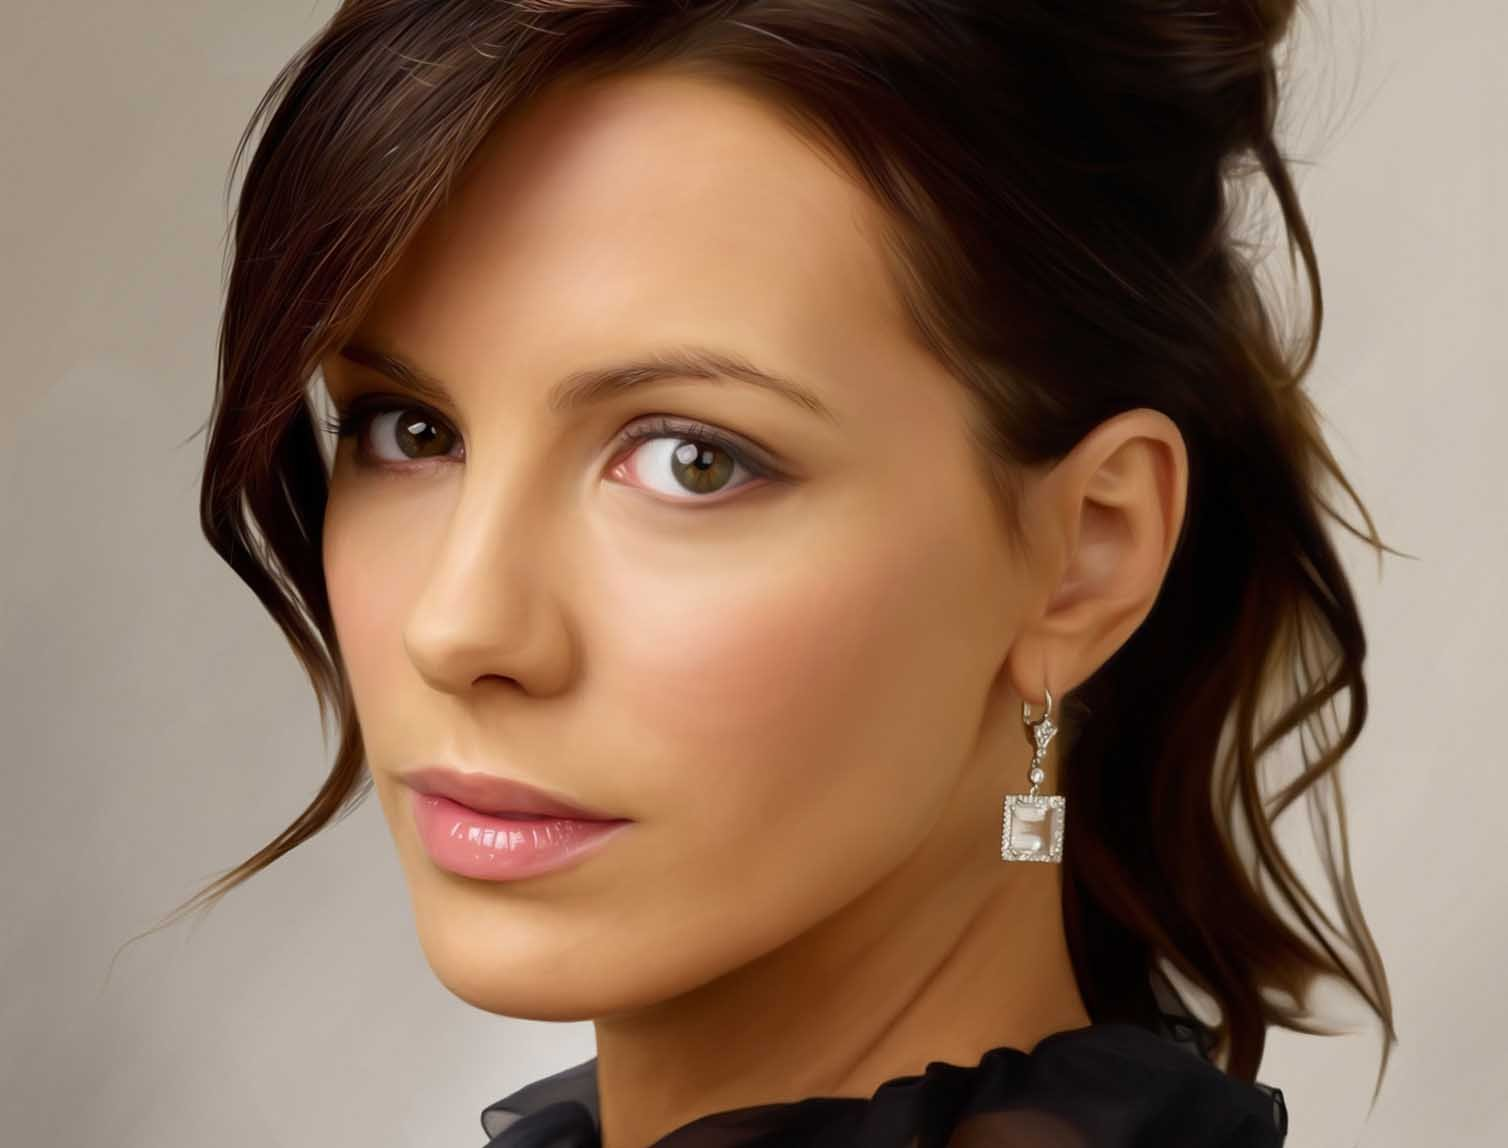 pictures Kate Beckinsale (born 1973)